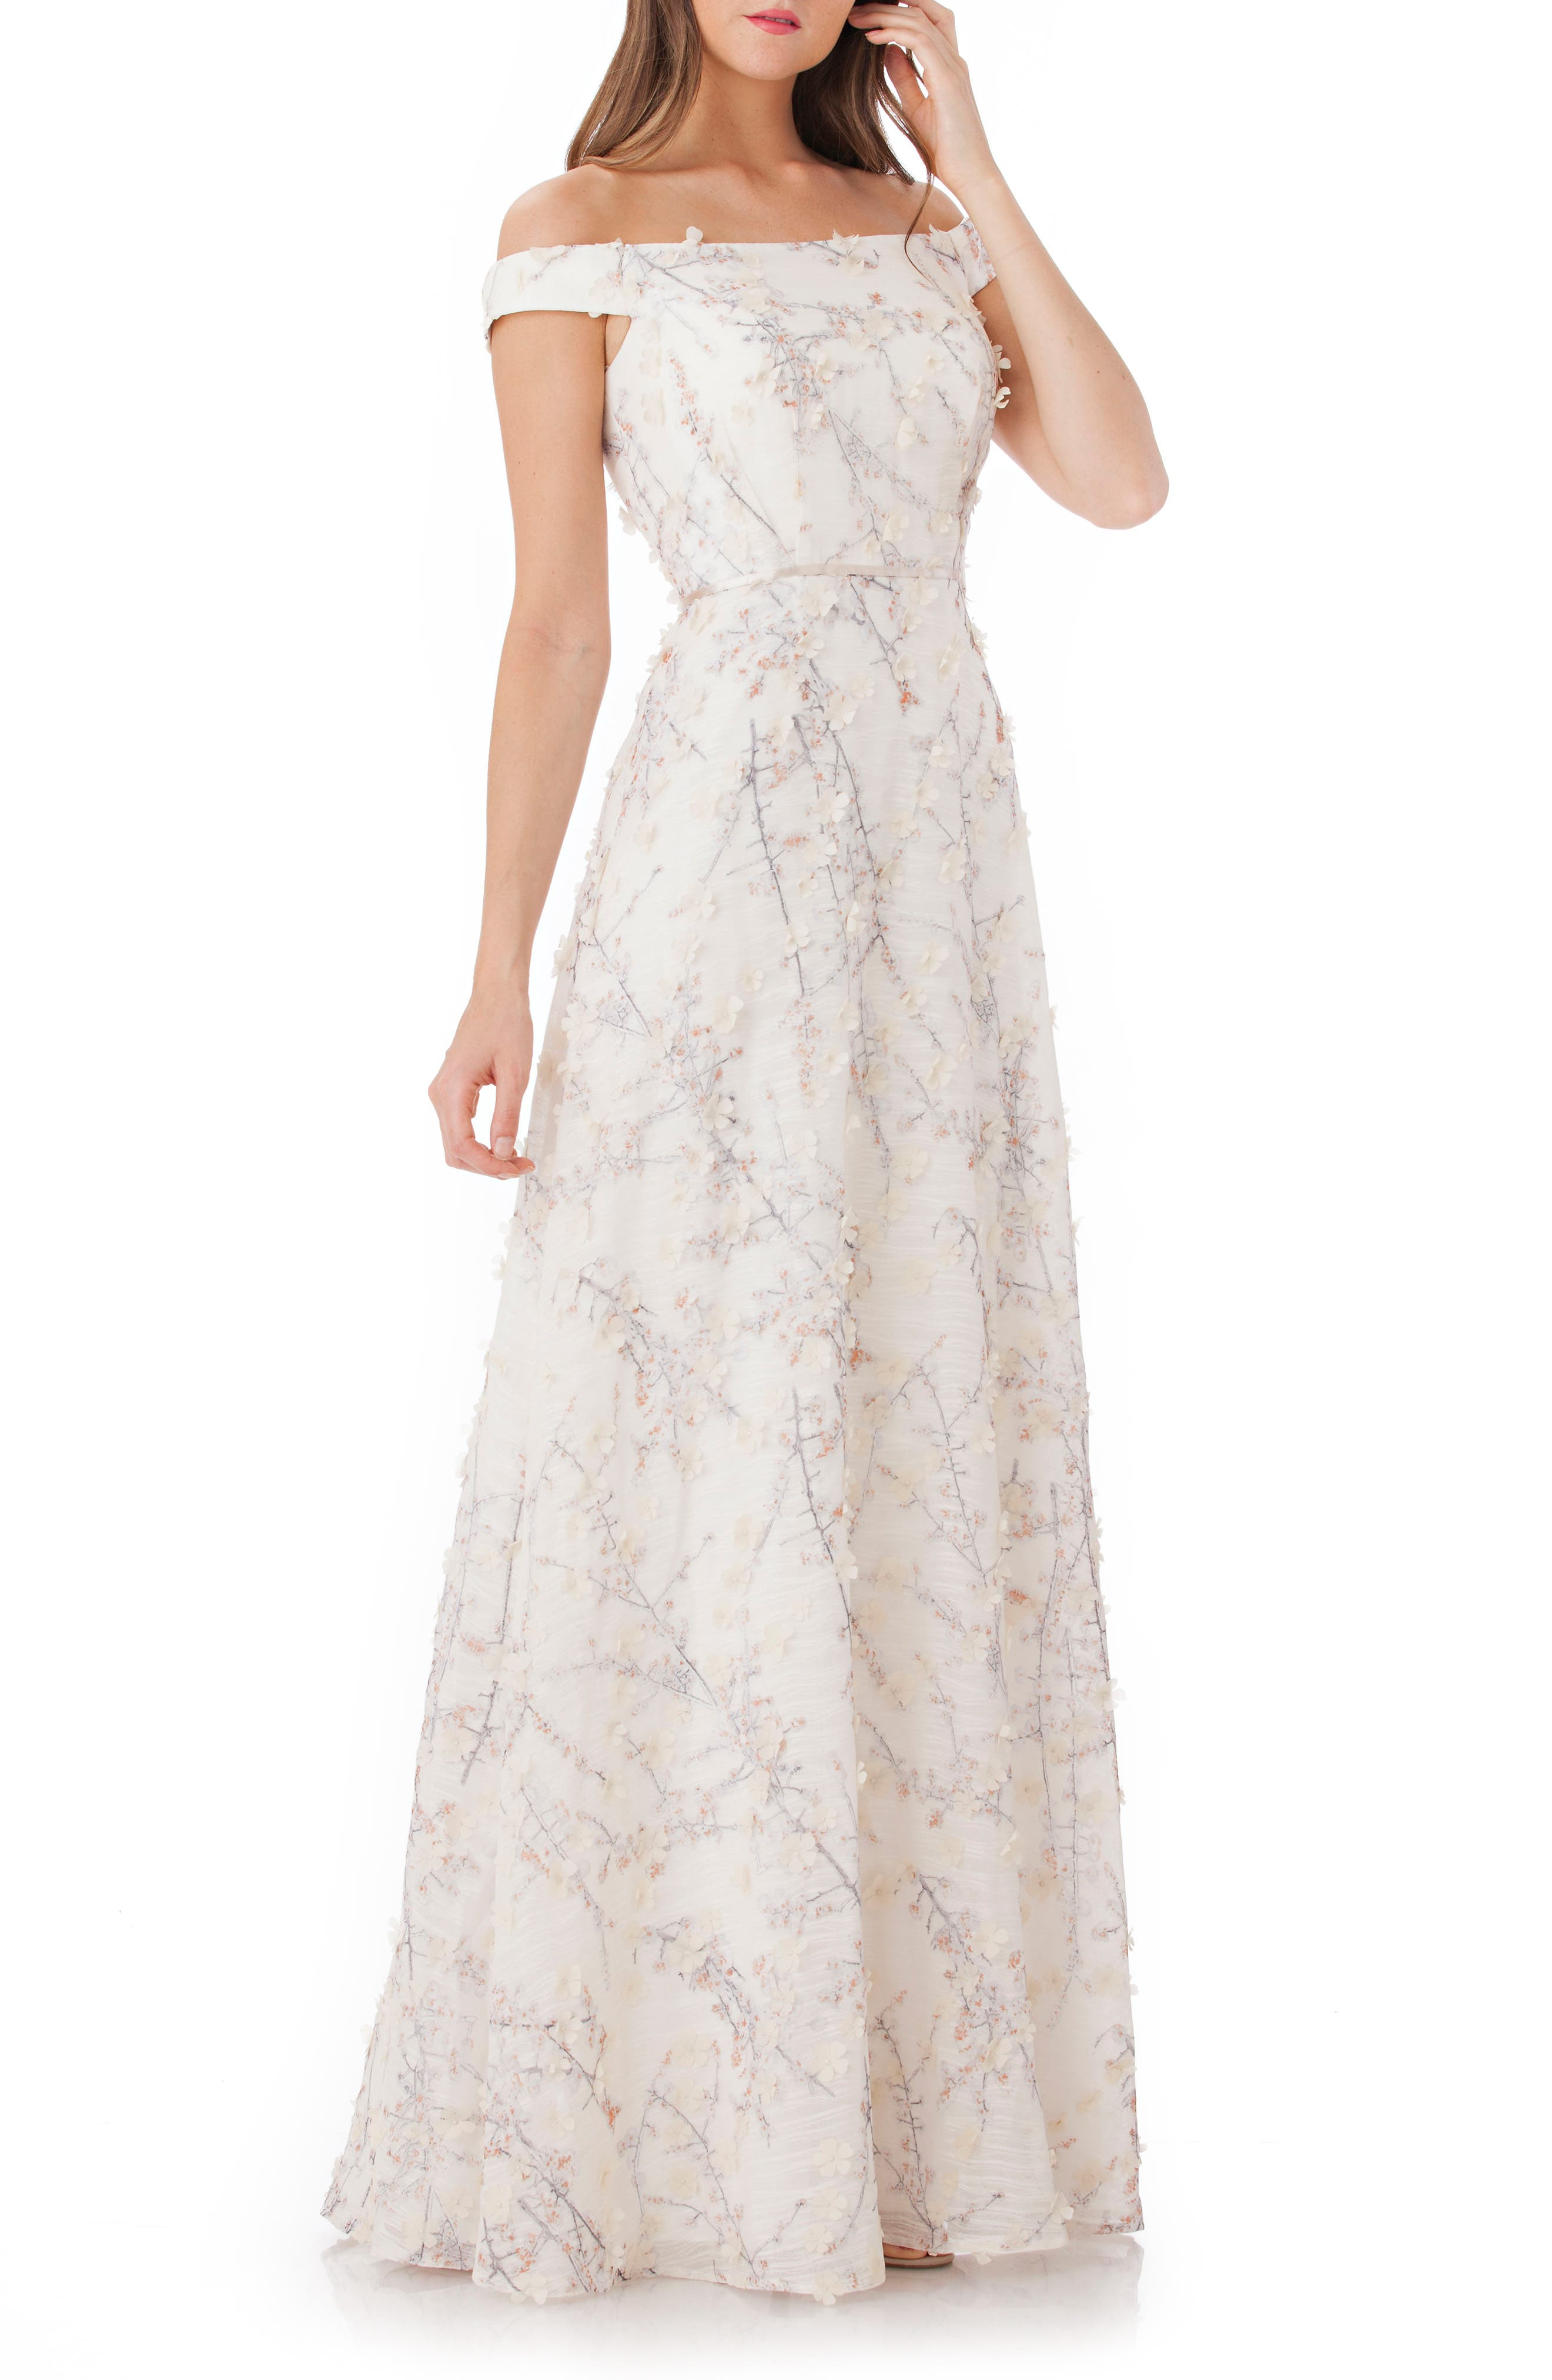 CARMEN MARC VALVO INFUSION 3D Embroidery Off the Shoulder Gown, Main, color, 270